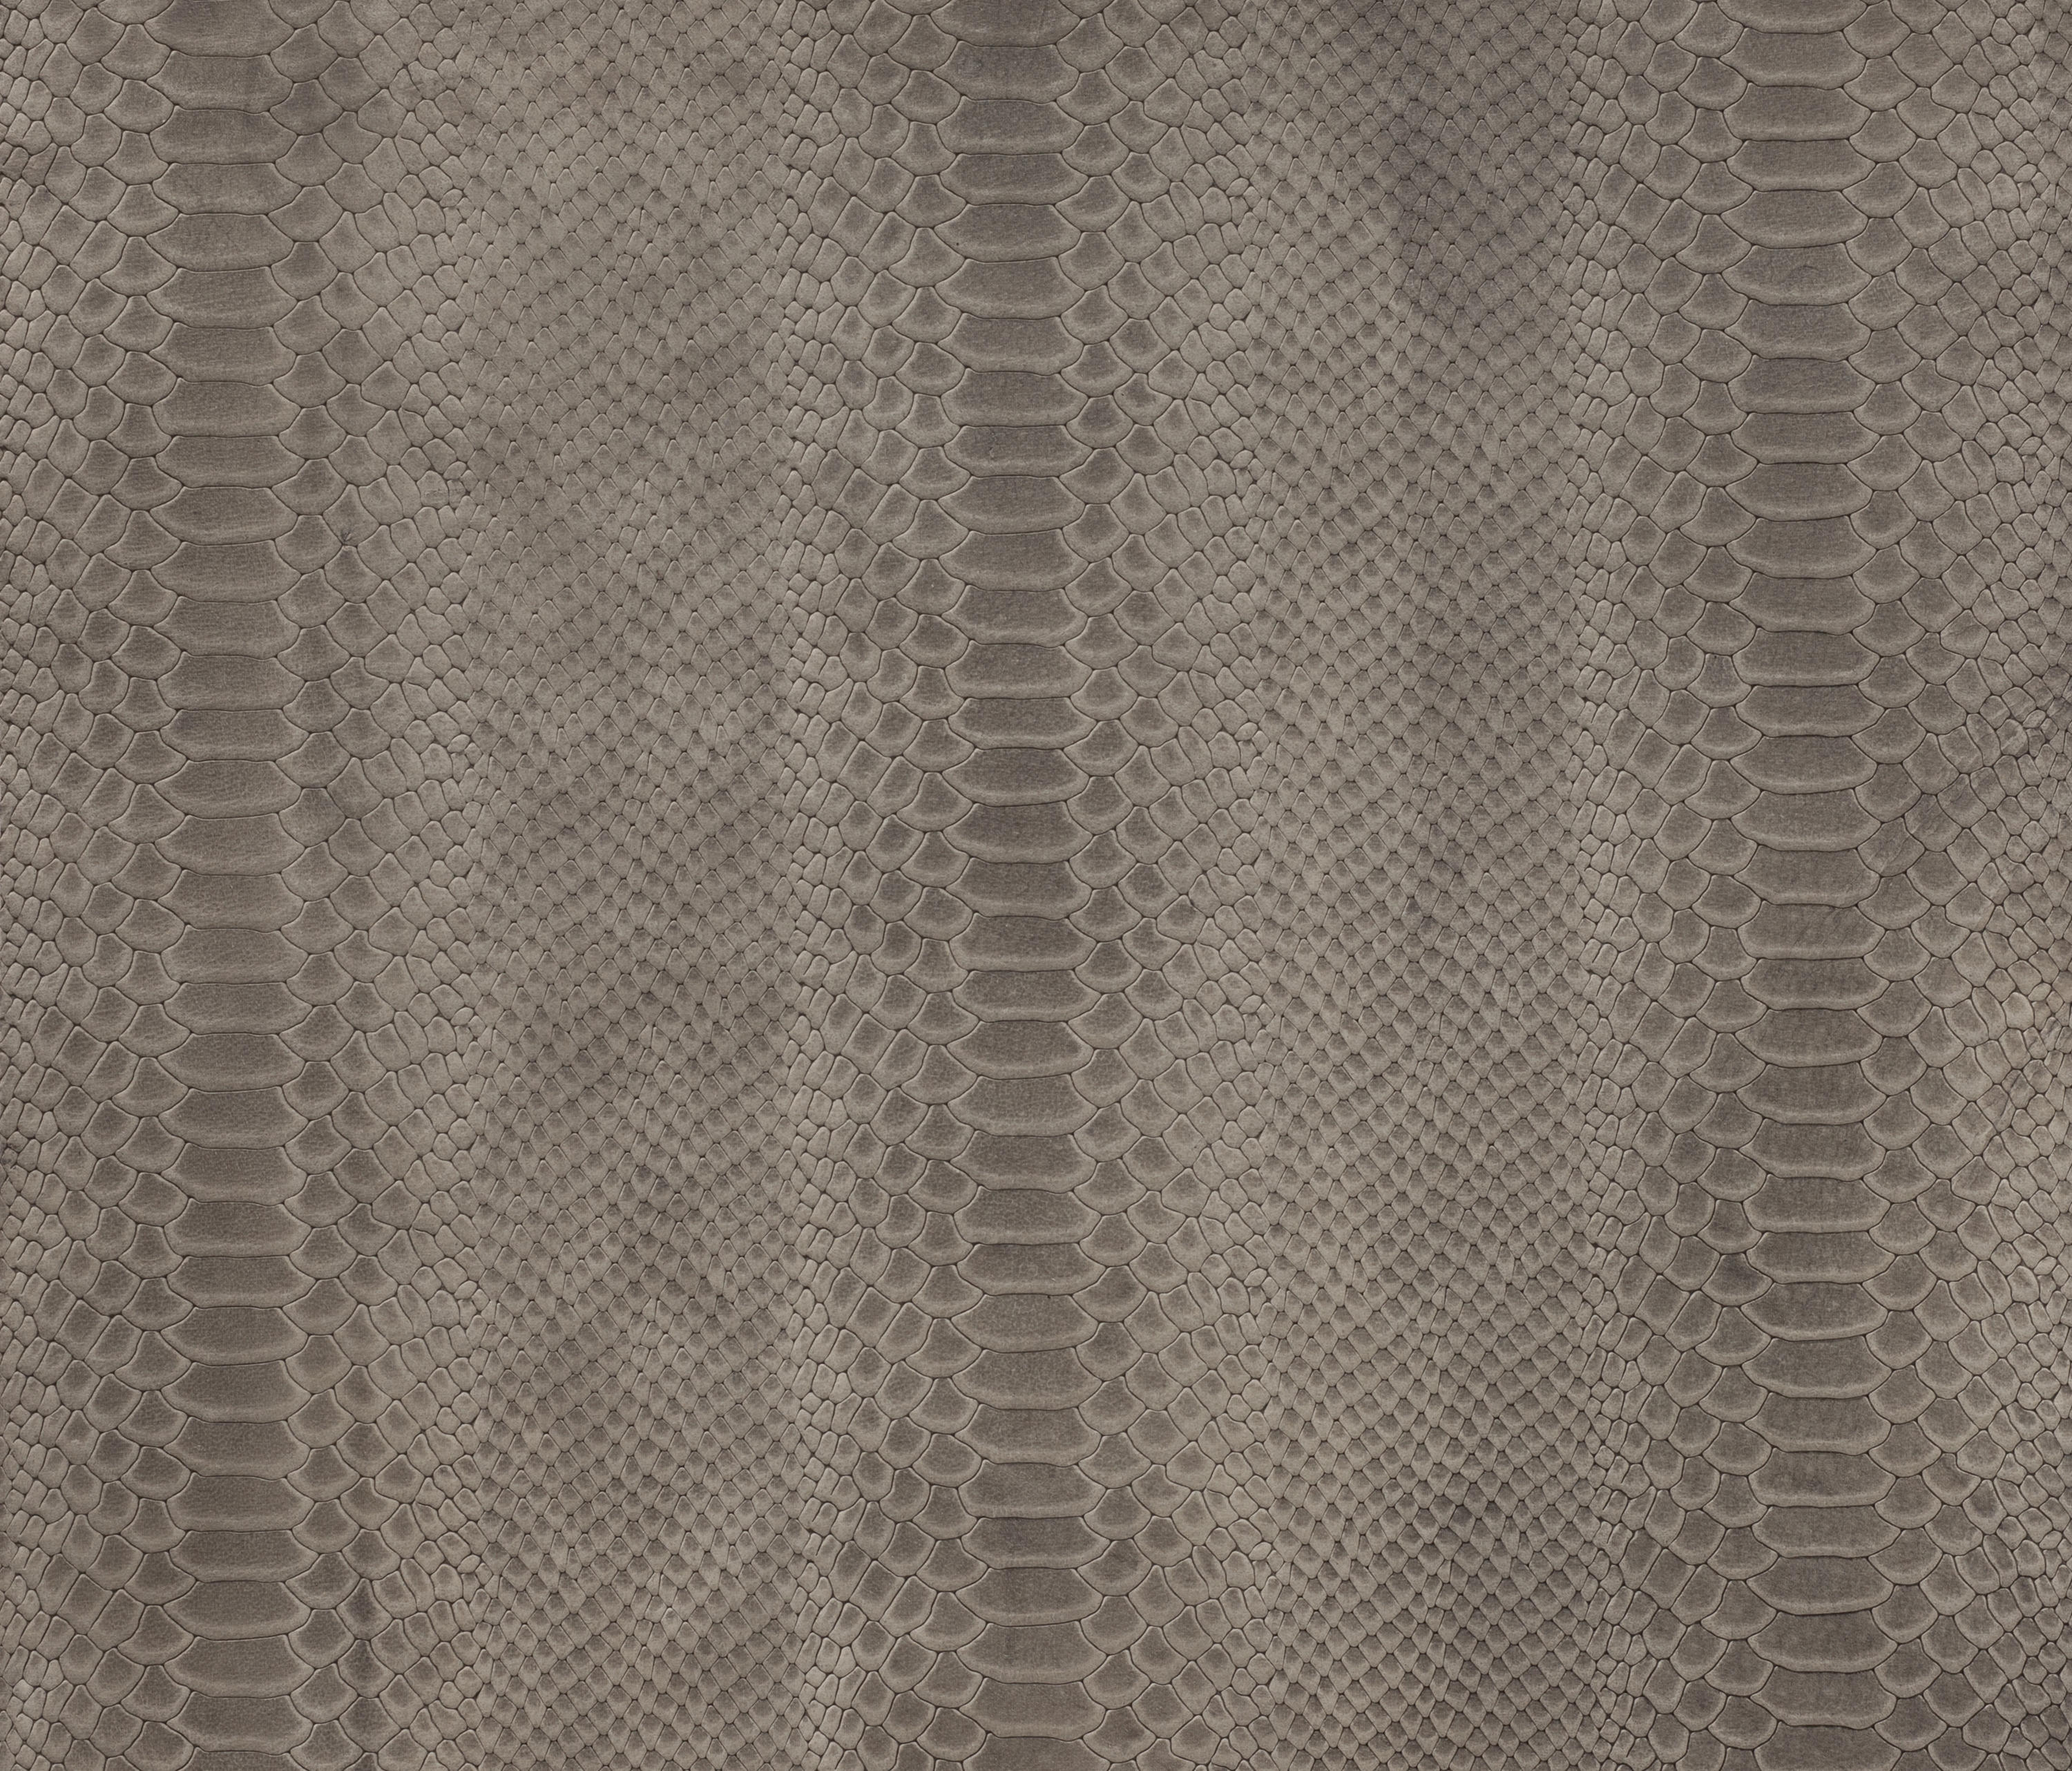 COBRA - Leather tiles from Alphenberg Leather | Architonic